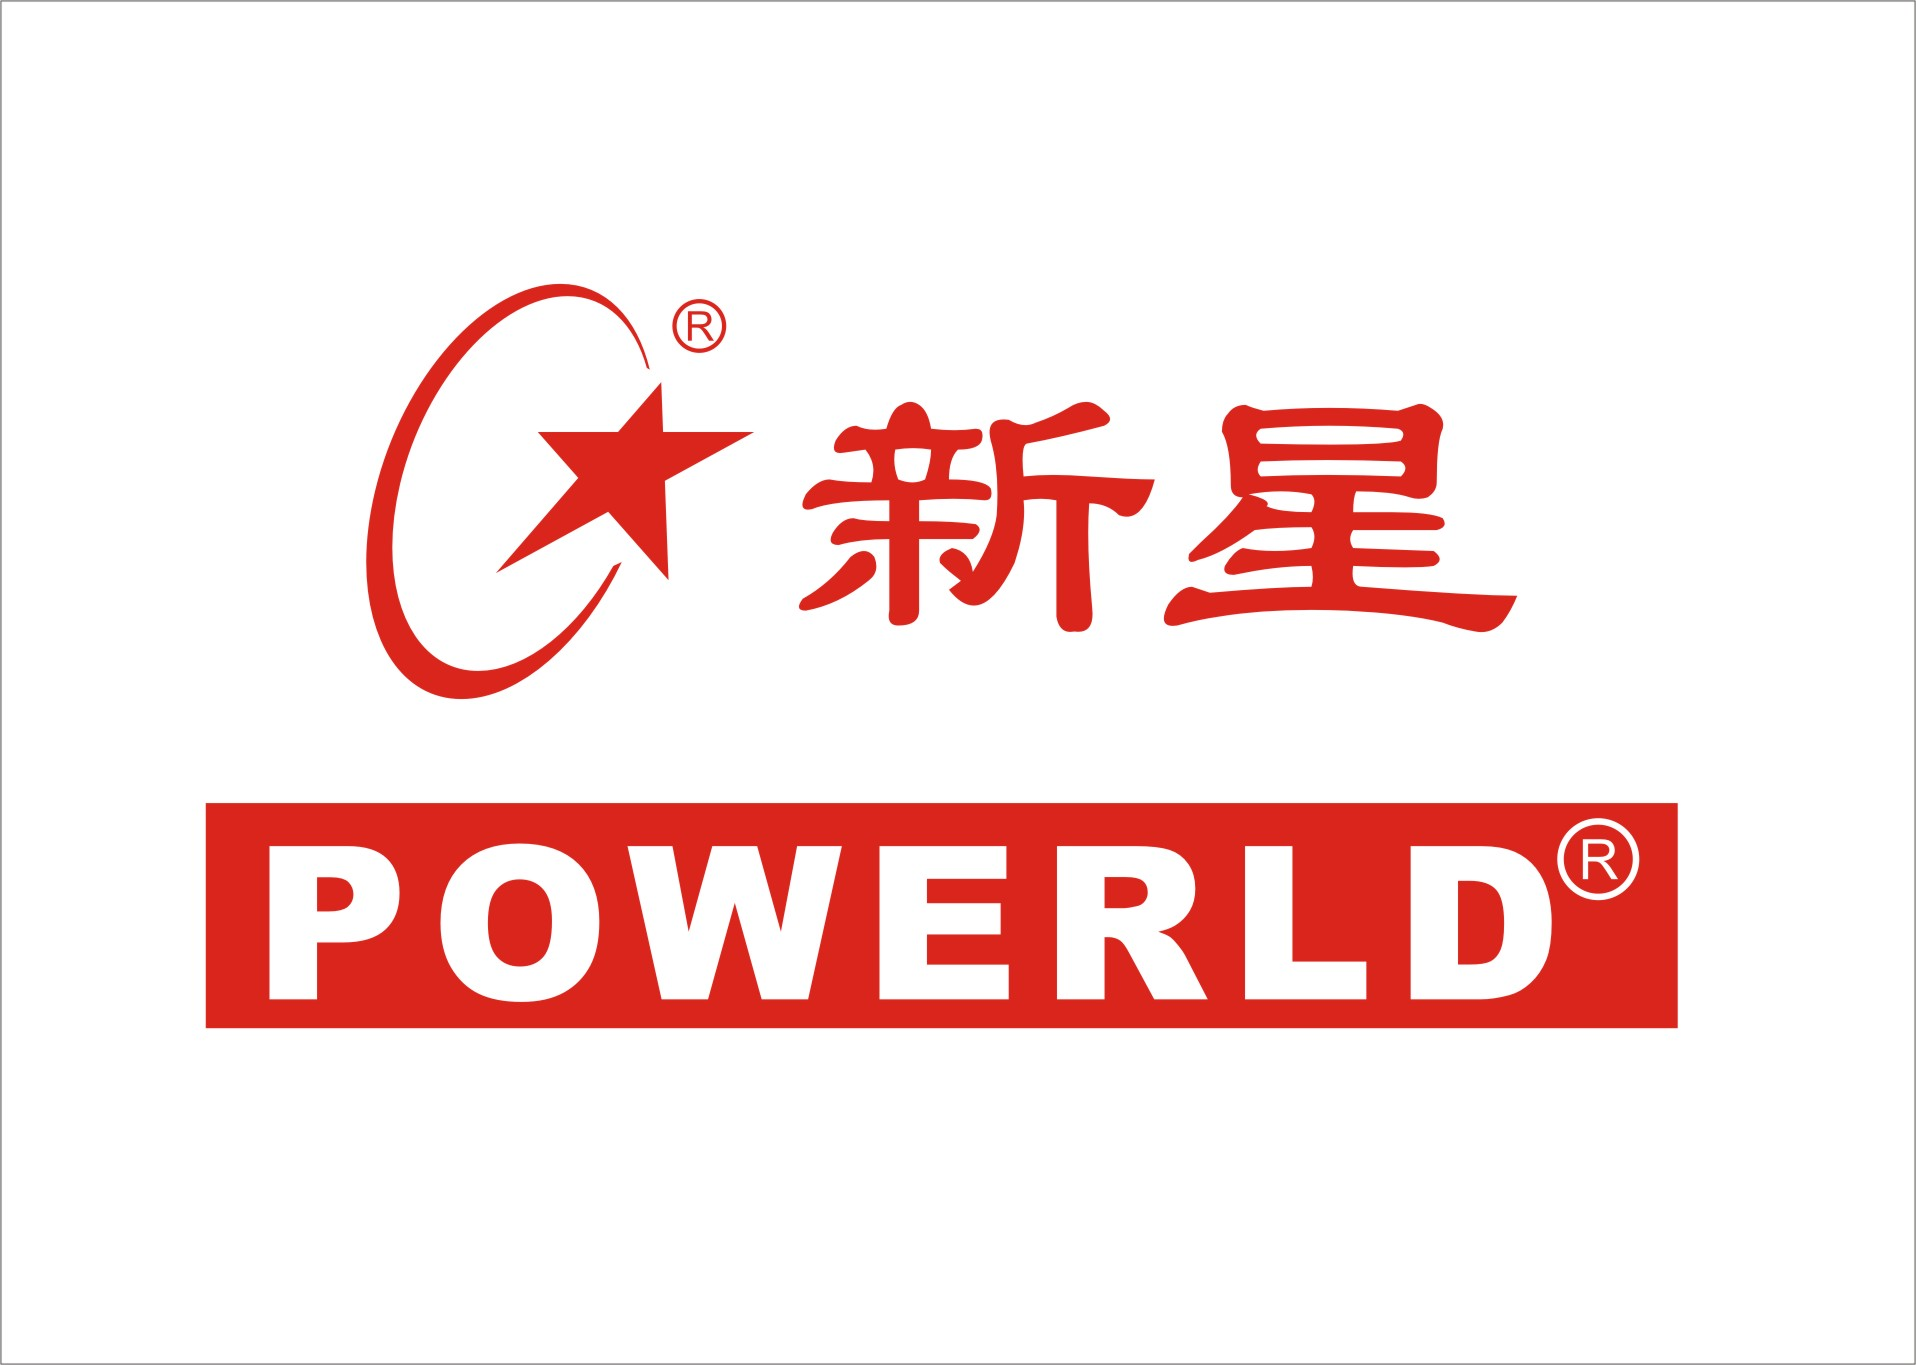 Powerld Enterprises Co., Ltd